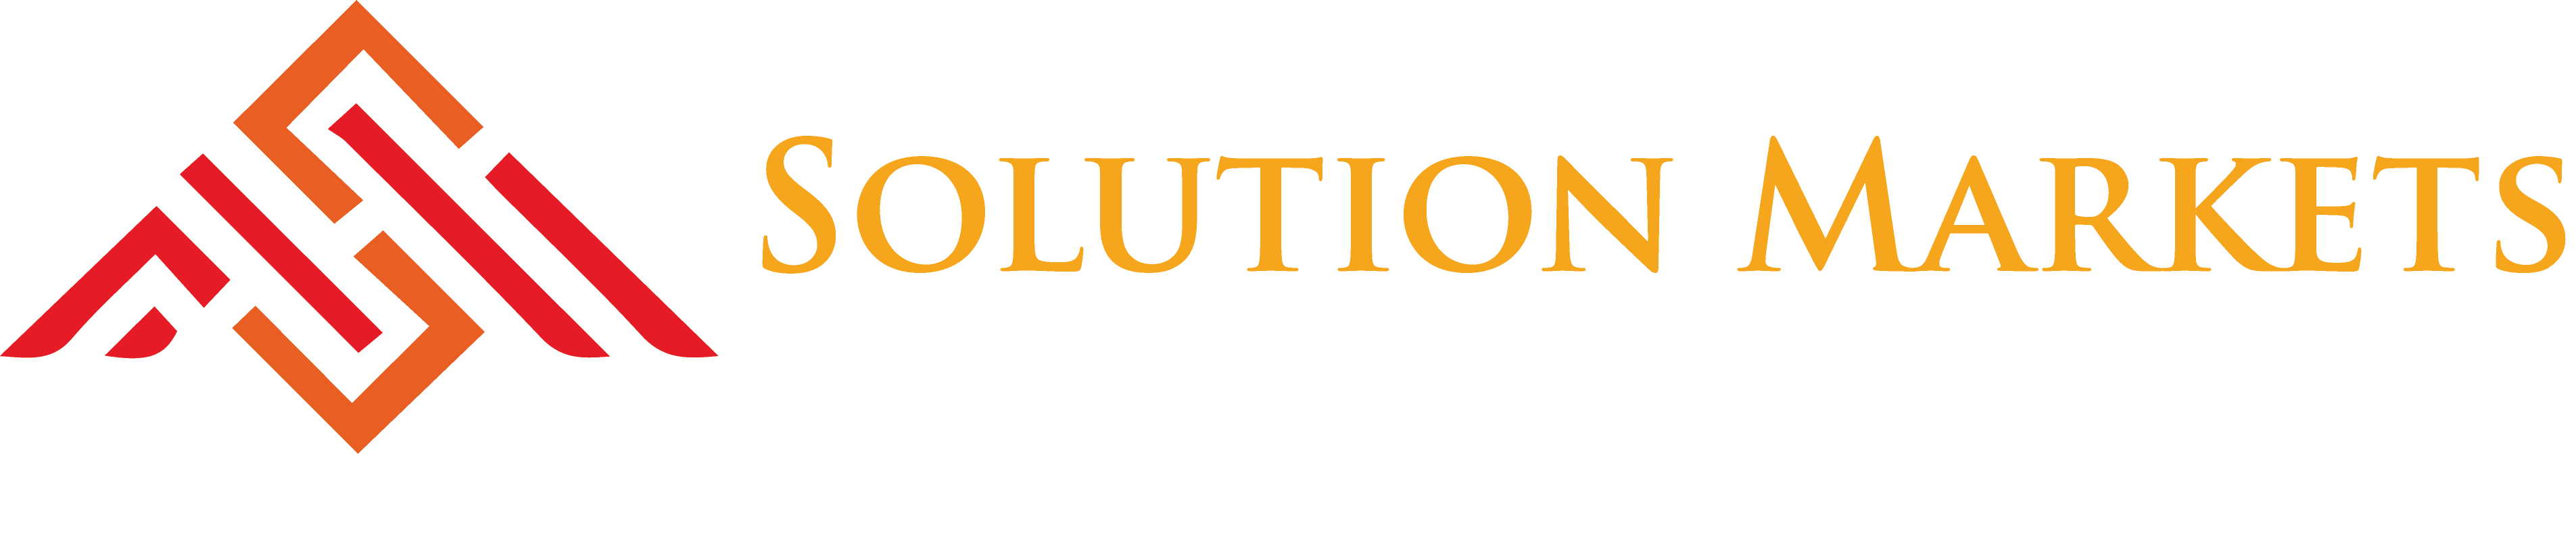 solutionMarkets at your service